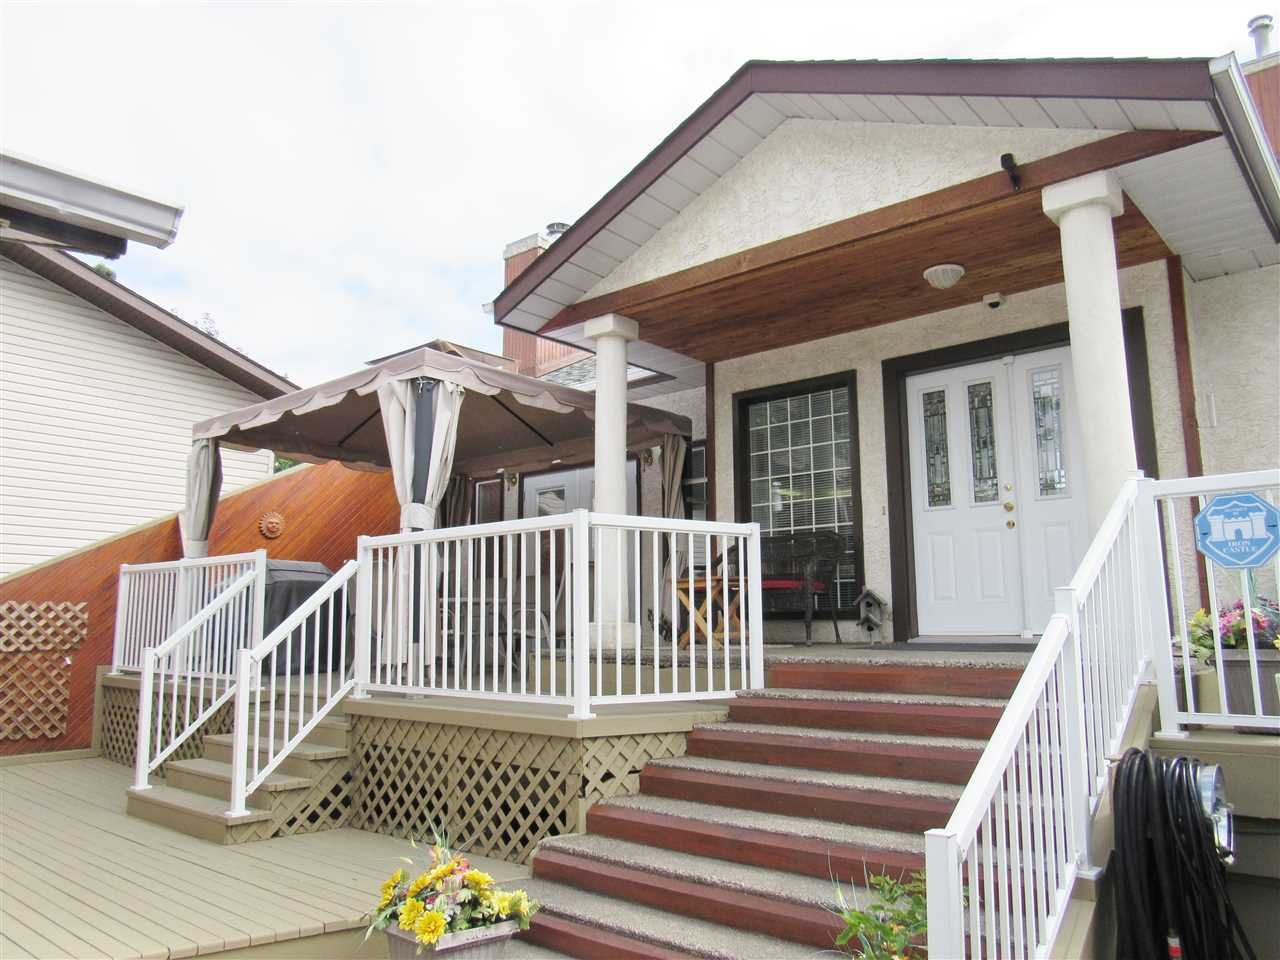 Main Photo: 9809 154 Street in Edmonton: Zone 22 House for sale : MLS® # E4077165